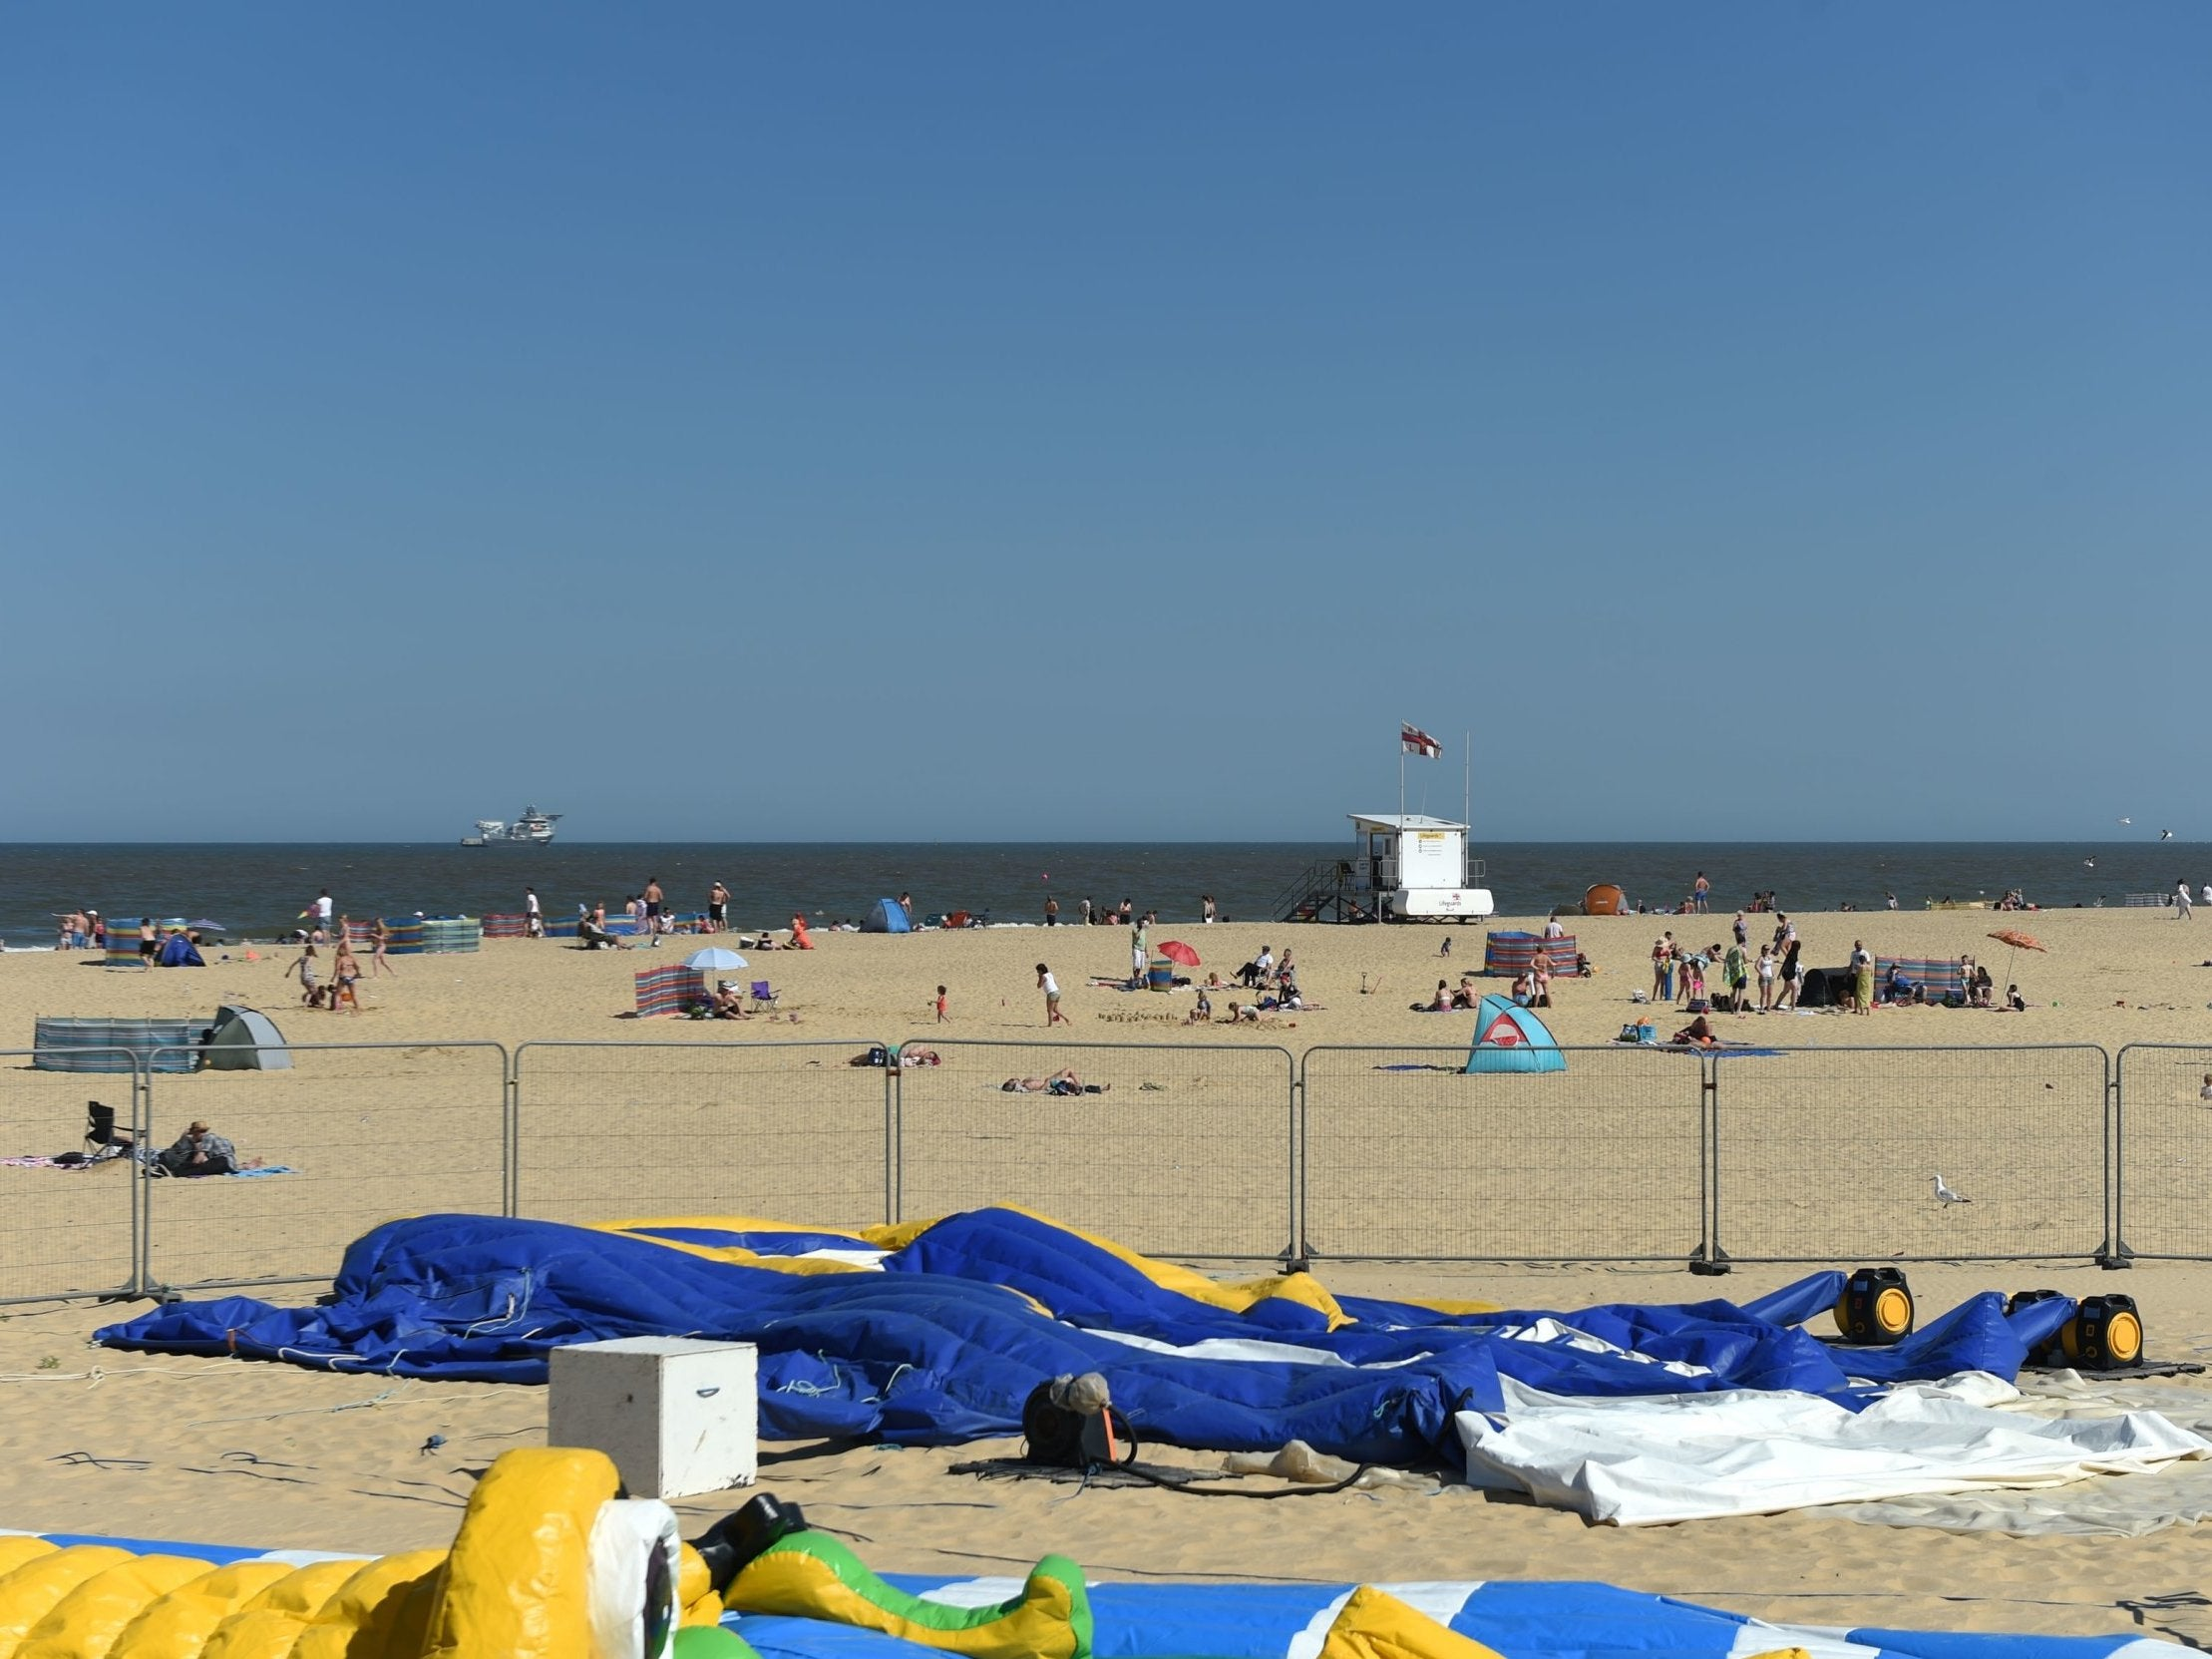 Young girl killed in bouncy castle incident on Gorleston